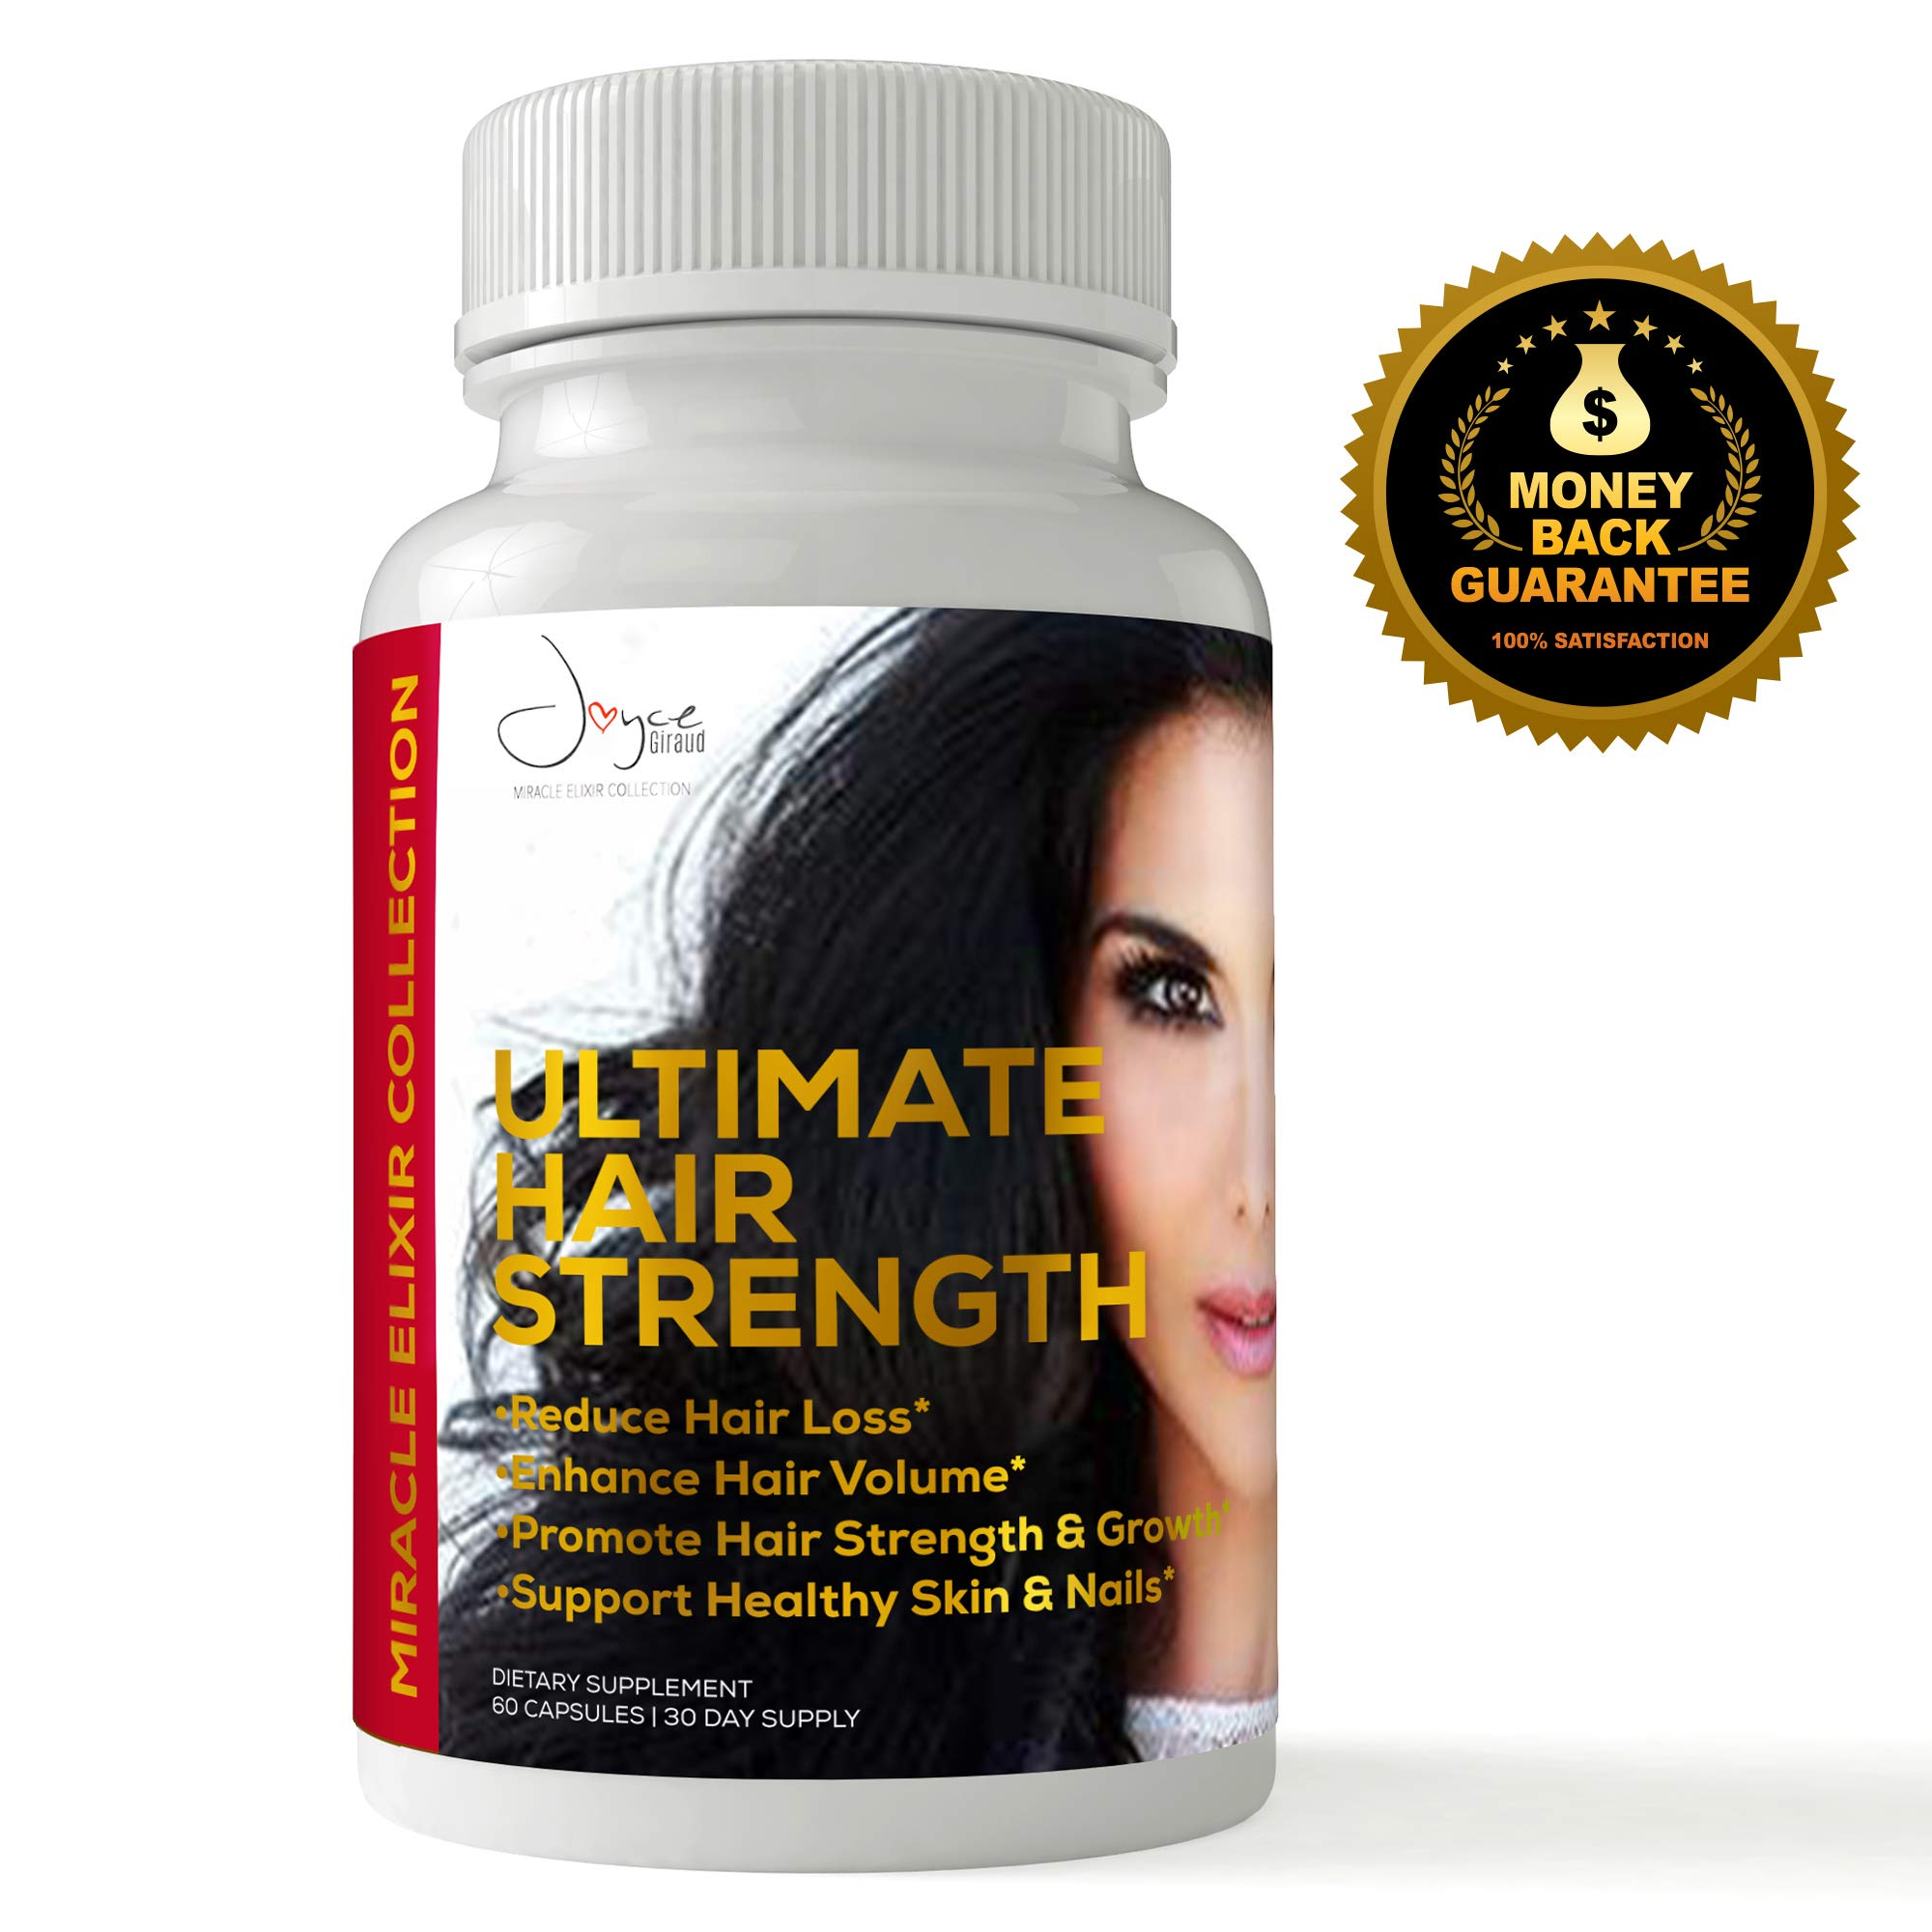 Clinically Proven Ultimate Hair Growth and Strength Supplement (100% Drug Free) Reduces Hair Loss and Thinning. Support Stronger, Longer, and Healthier Hair … (180)